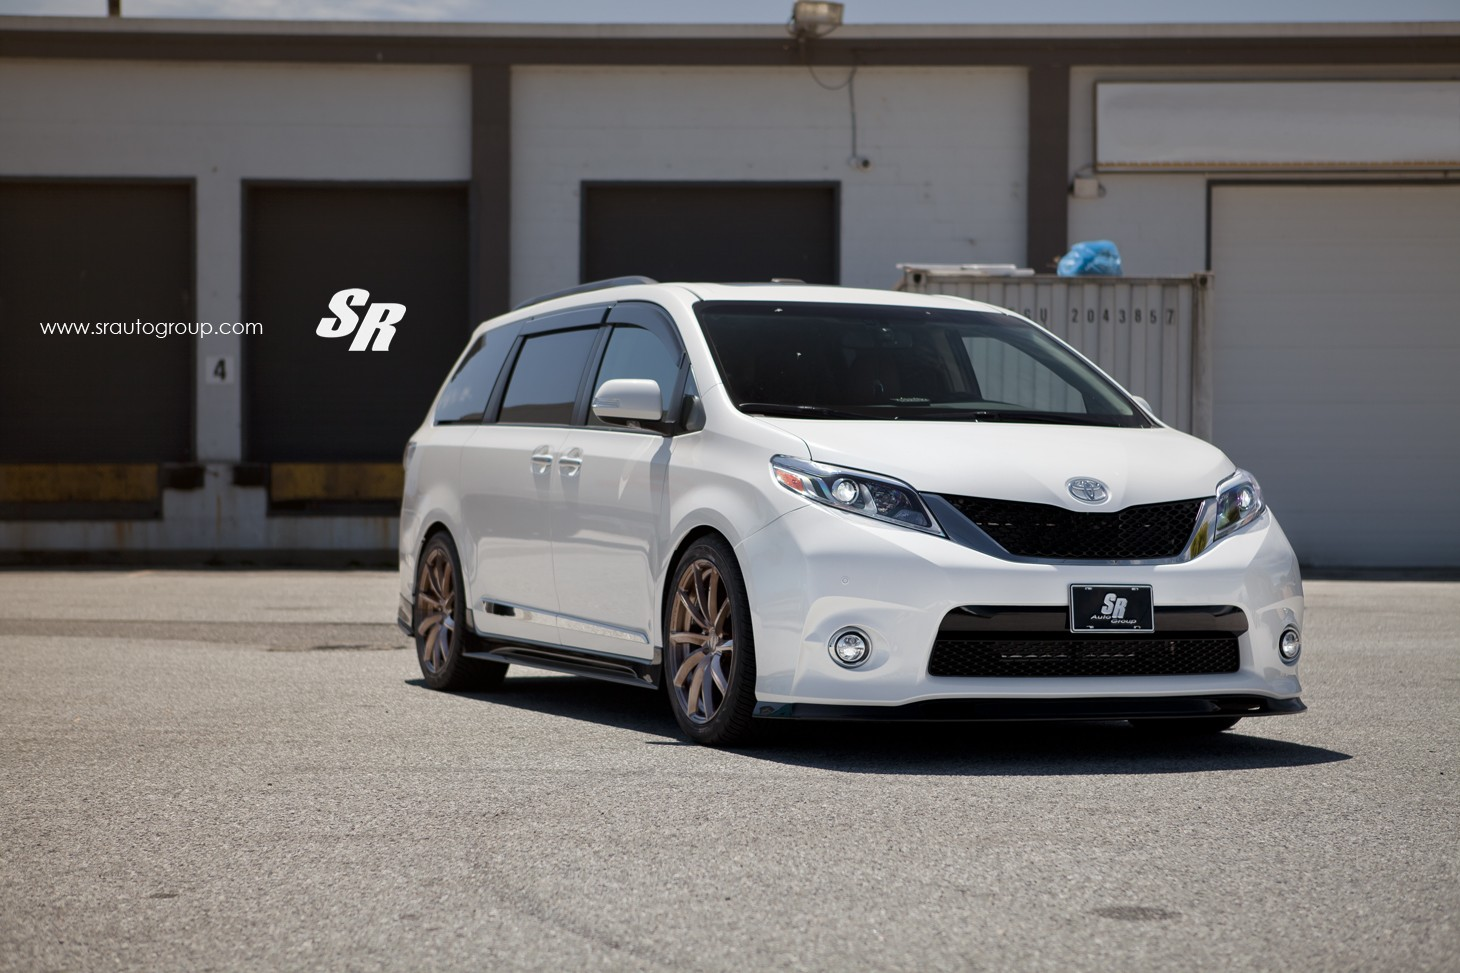 Second Chance Auto >> 2015 Toyota Sienna on PUR Wheels Looks Unexpectedly Sporty - autoevolution